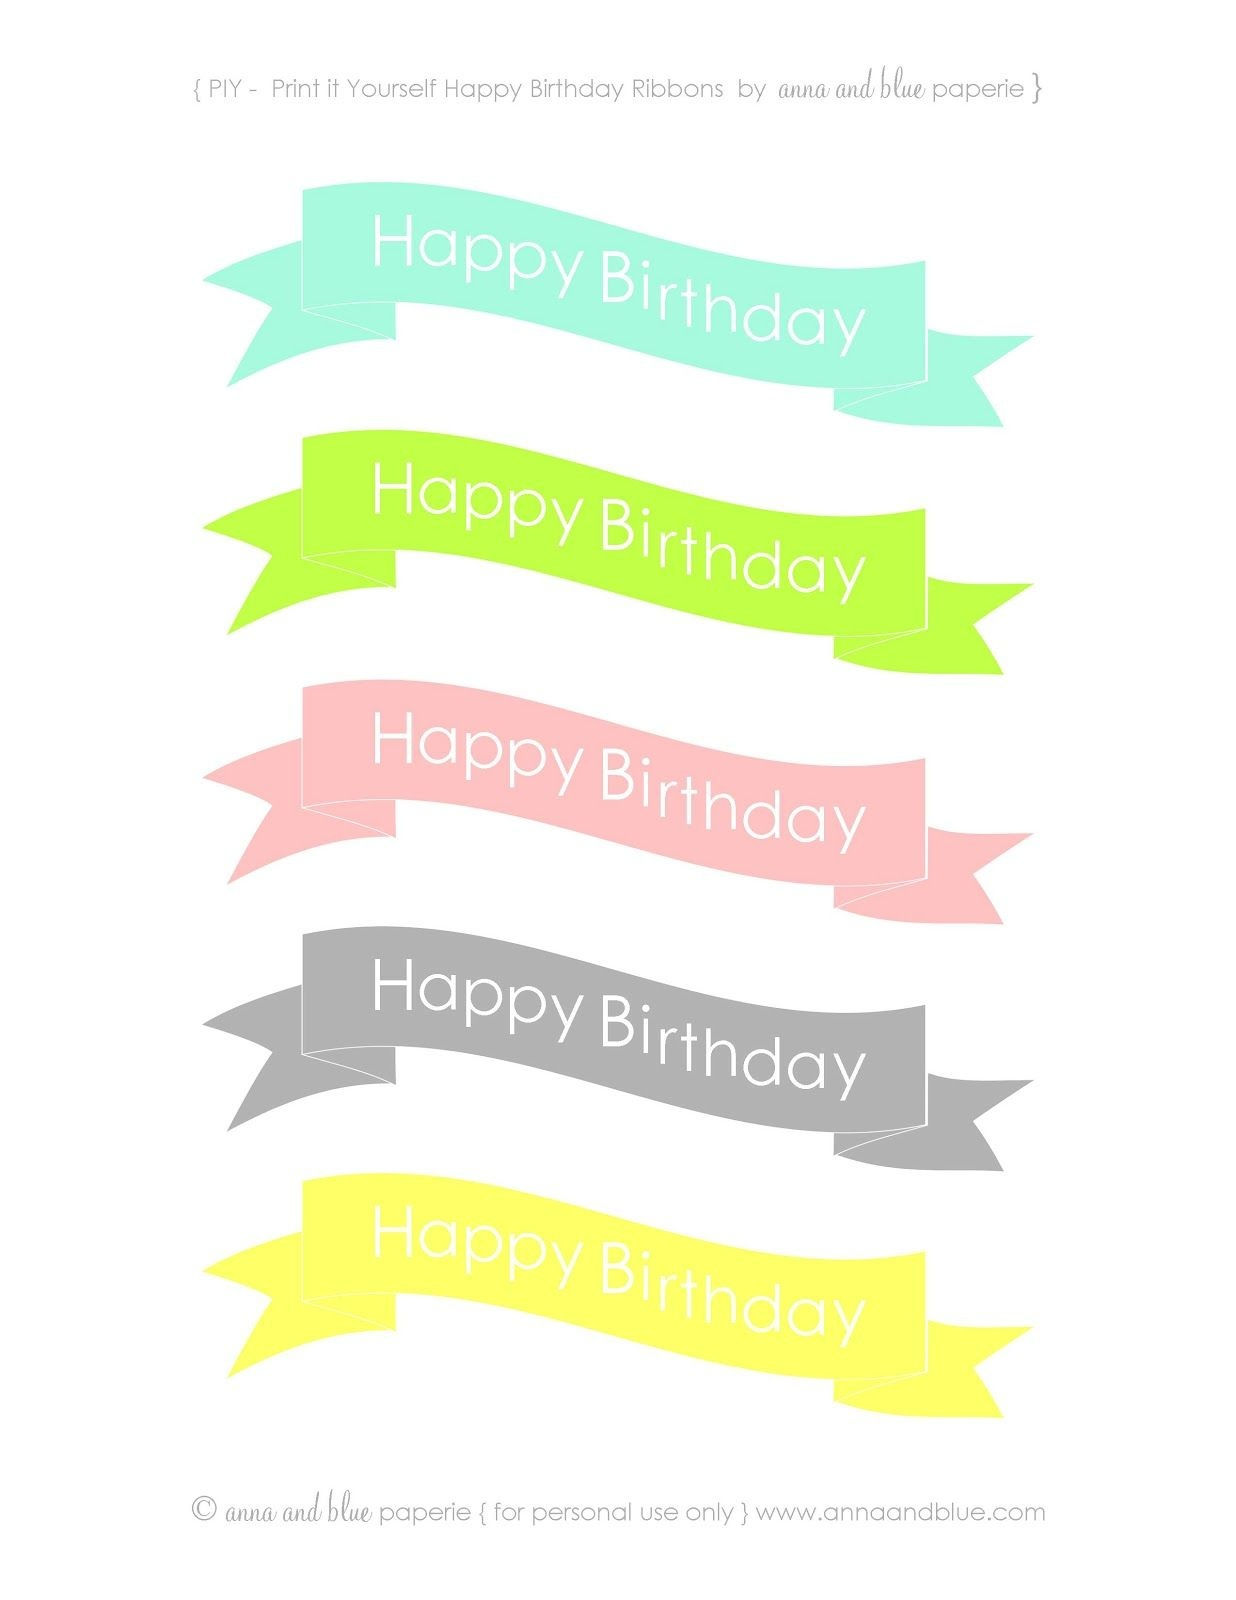 Anna And Blue Paperie: {Free Printable} Happy Birthday Cake Banners - Free Printable Cake Bunting Template